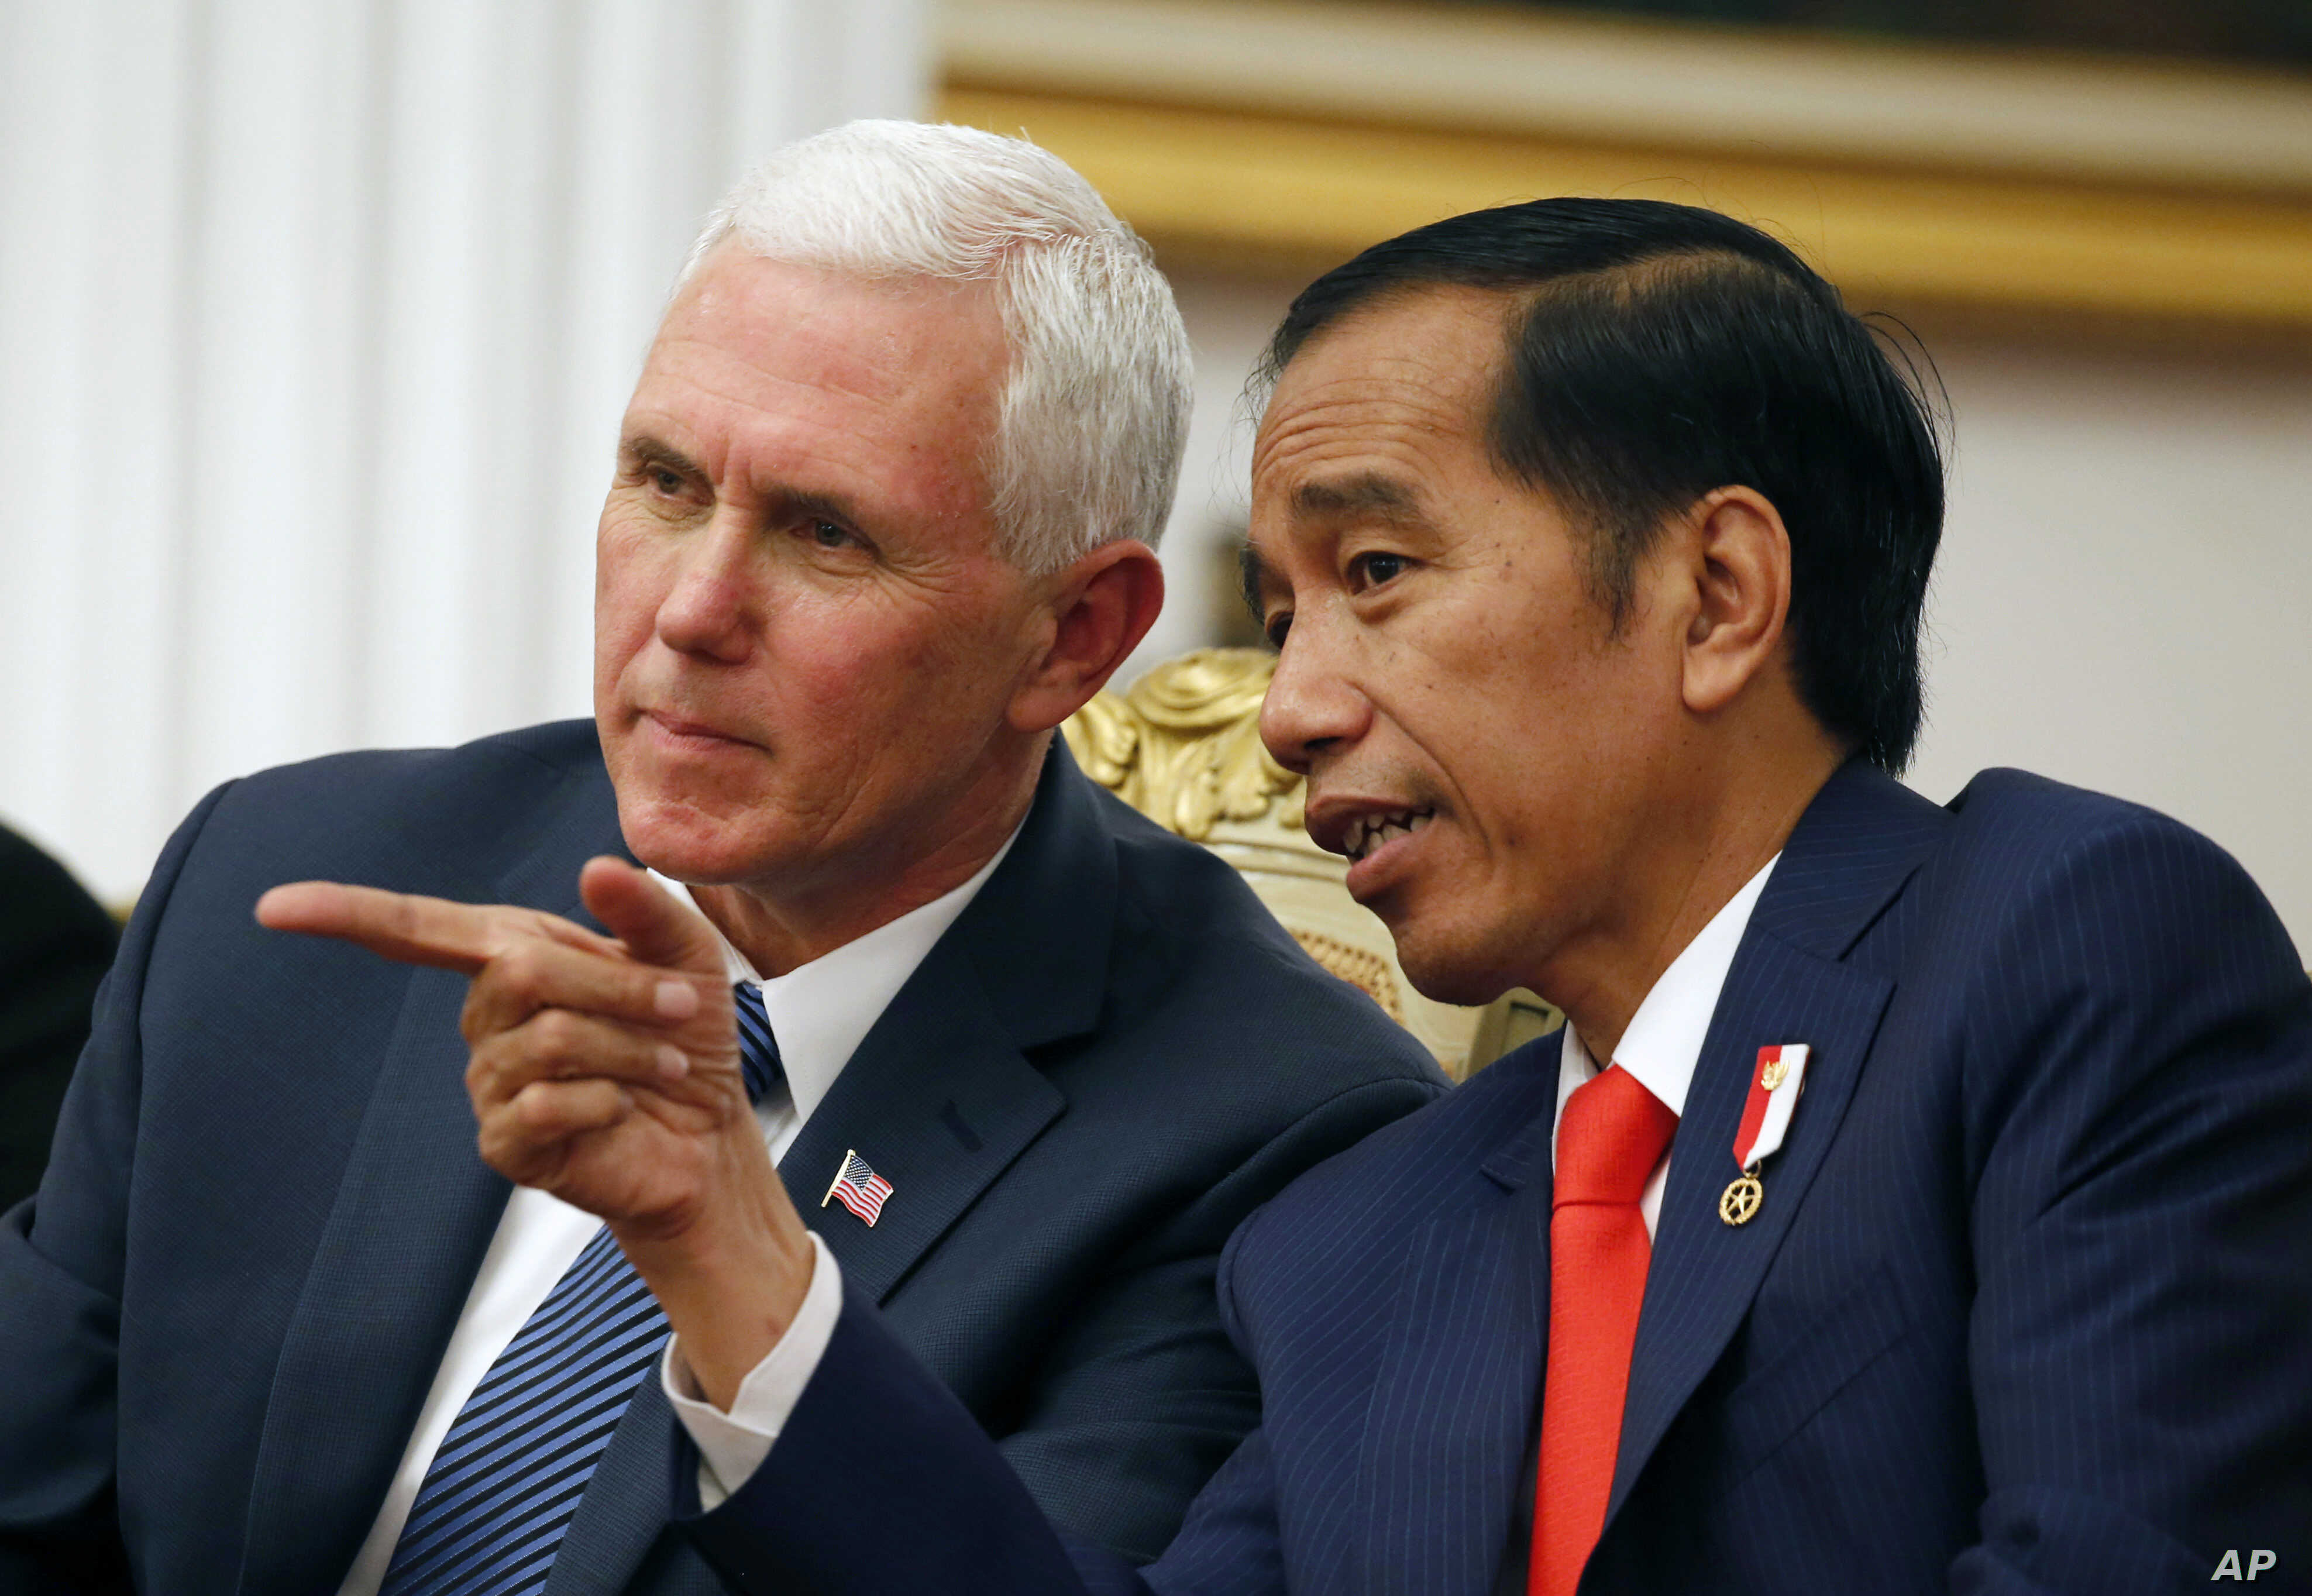 U.S. Vice President Mike Pence (left) talks with Indonesian President Joko Widodo during their meeting at Merdeka Palace in Jakarta, Indonesia, April 20, 2017. Pence is on a 10-day trip in Asia.